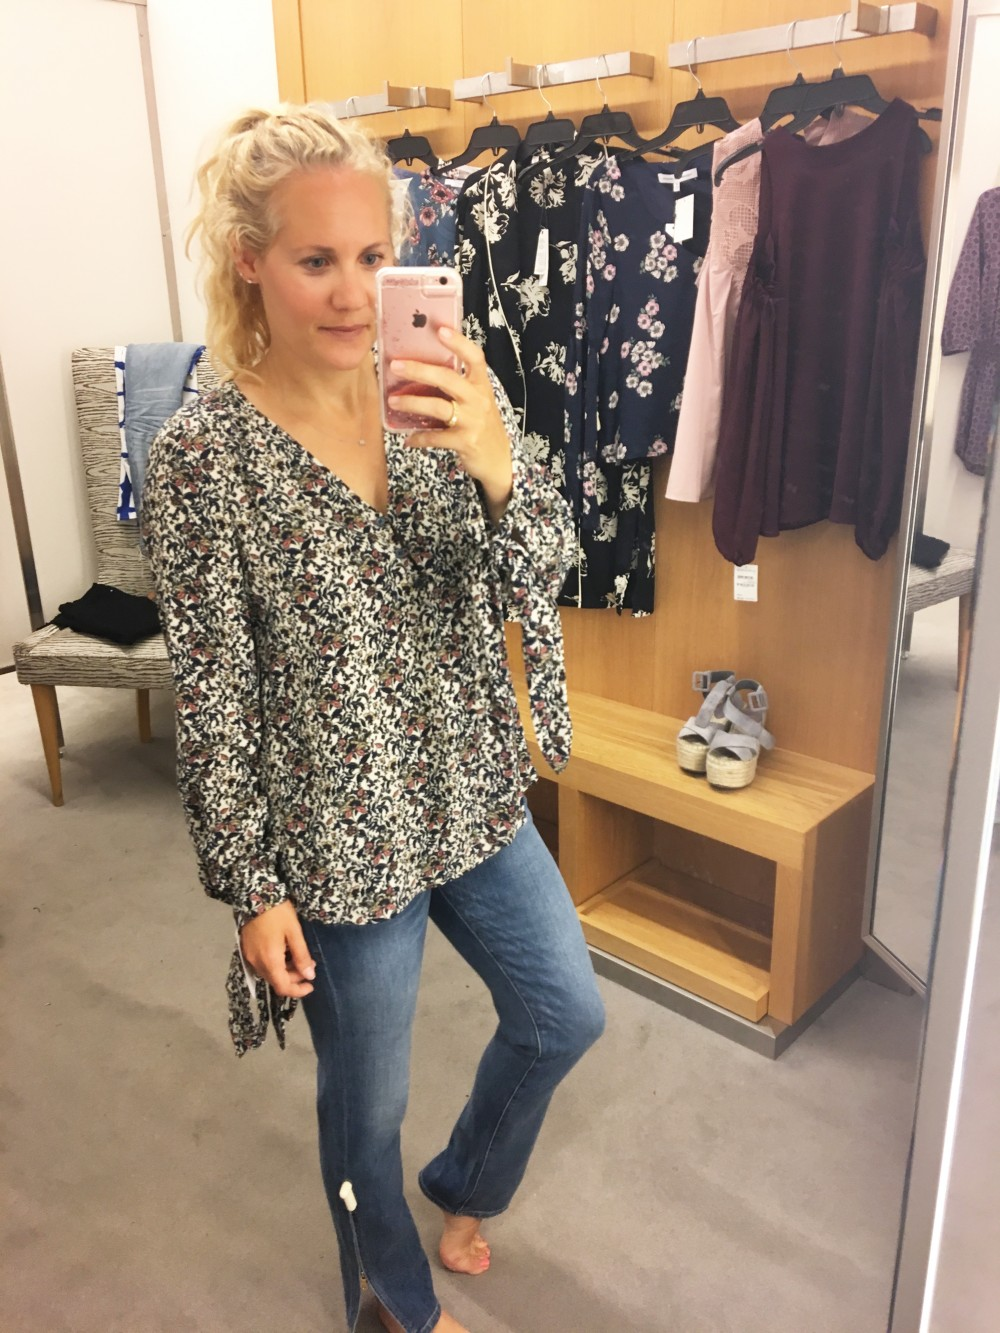 Dressing Room Diaries- Nordstrom Anniversary Sale-Fall Tops-Blogger Picks for the NSale-Nordstrom Sale-Fall Style-Fall Fashion 2017-Have Need Want 4